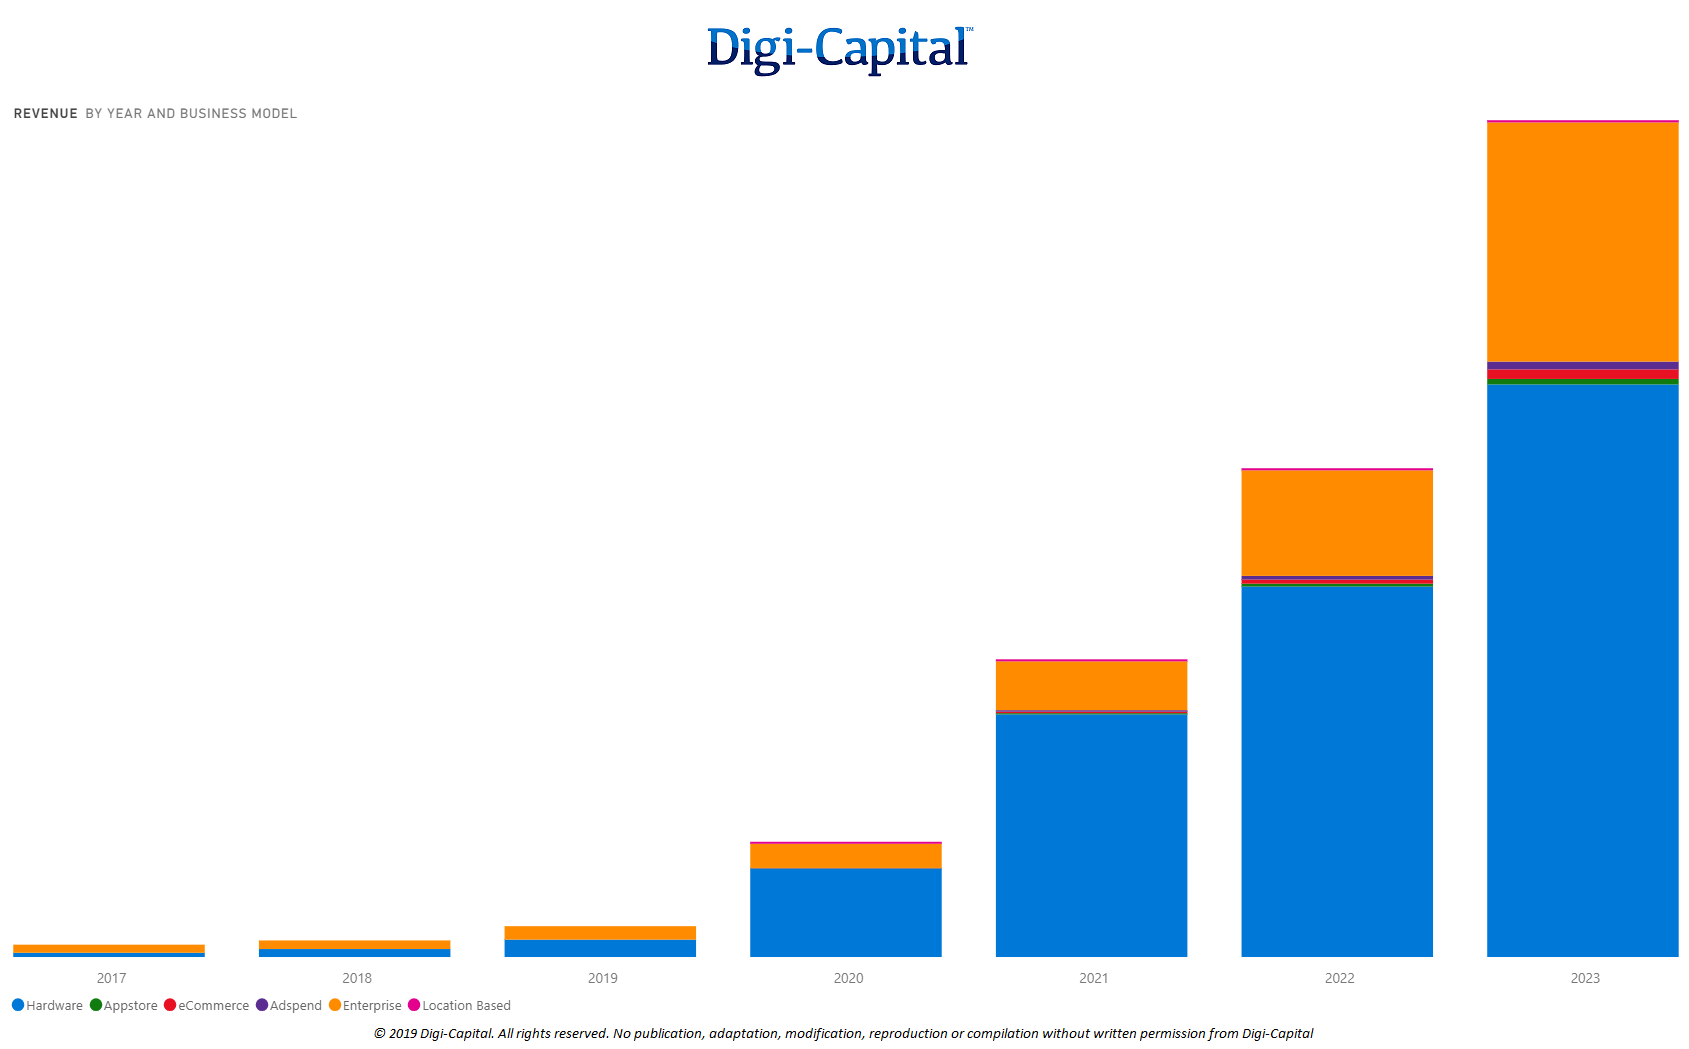 Smartglasses Business Model Revenue (Source: Digi-Capital AR/VR Analytics Platform)